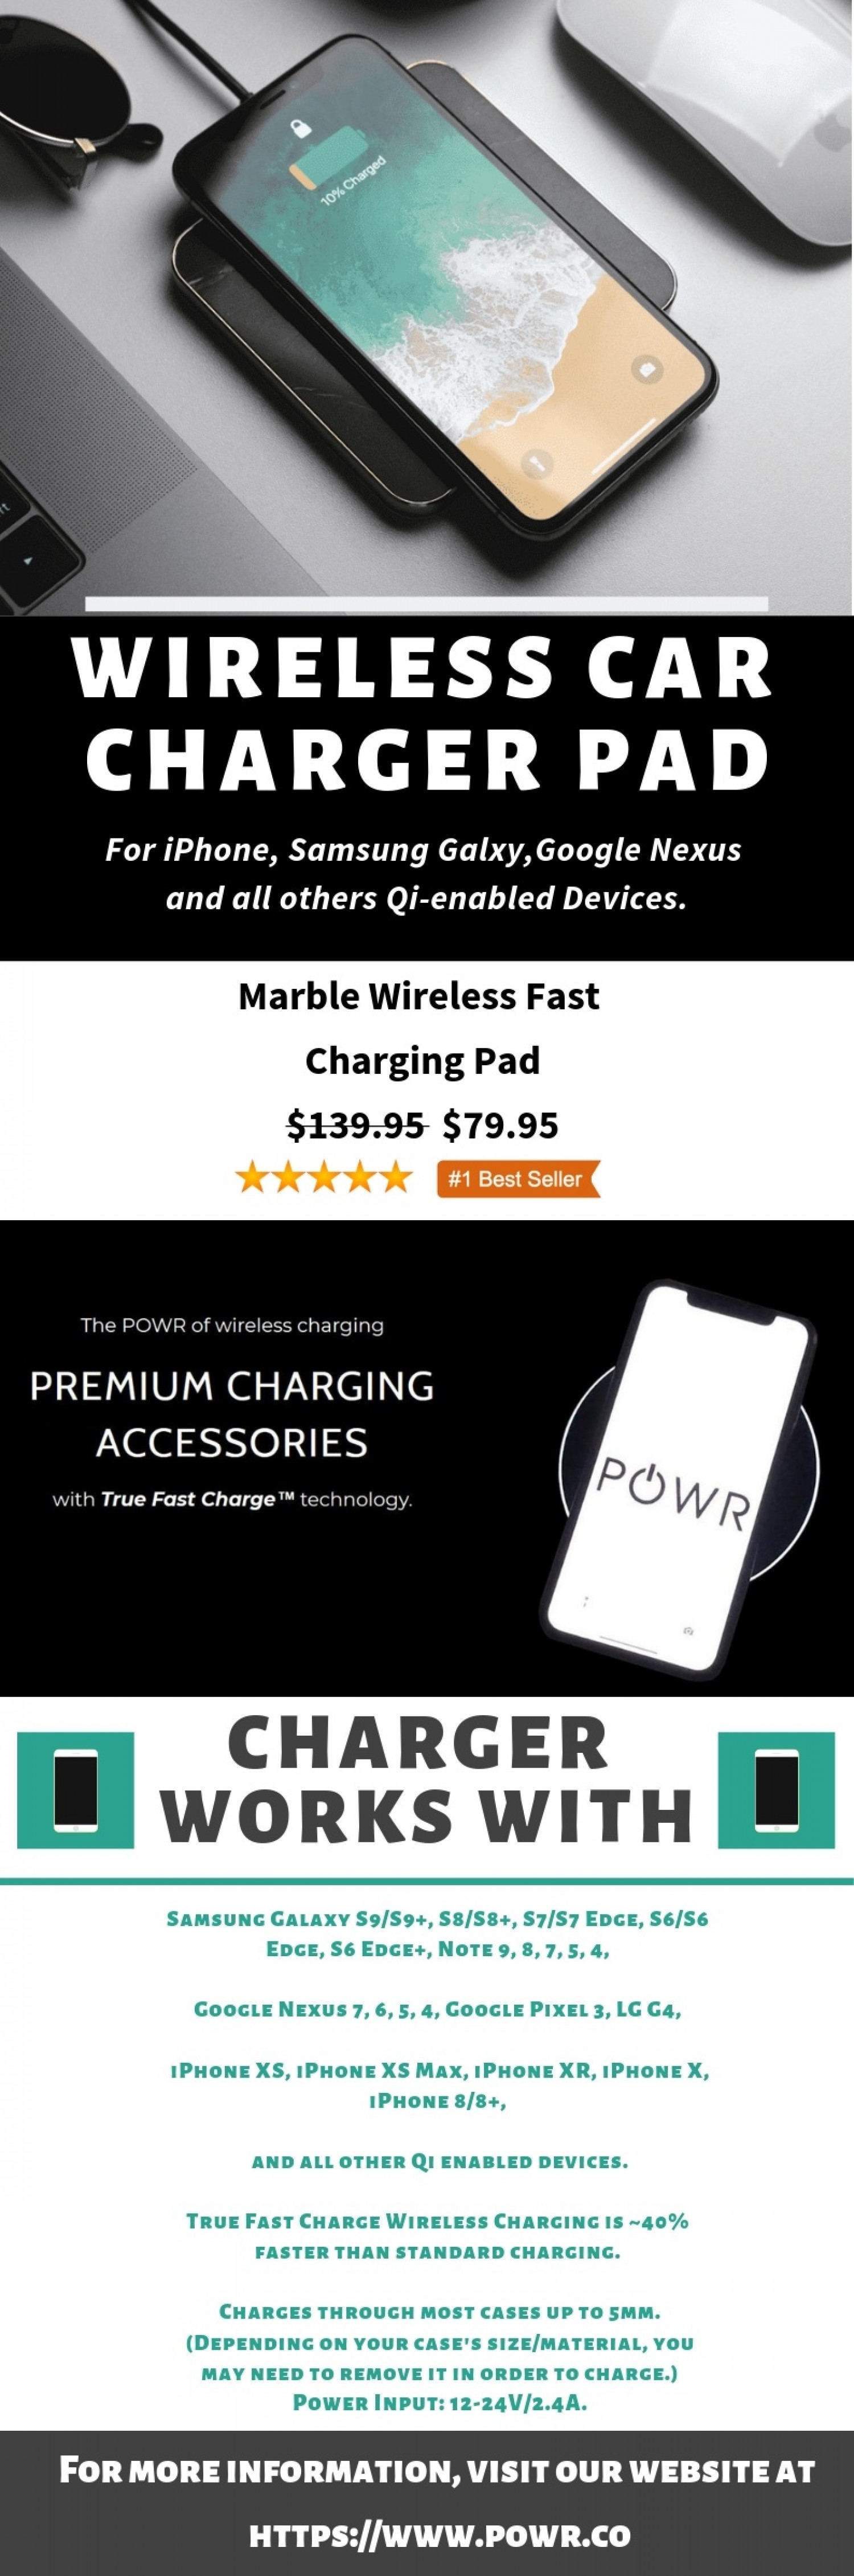 POWR - Fast Wireless Car Charger Pad Infographic